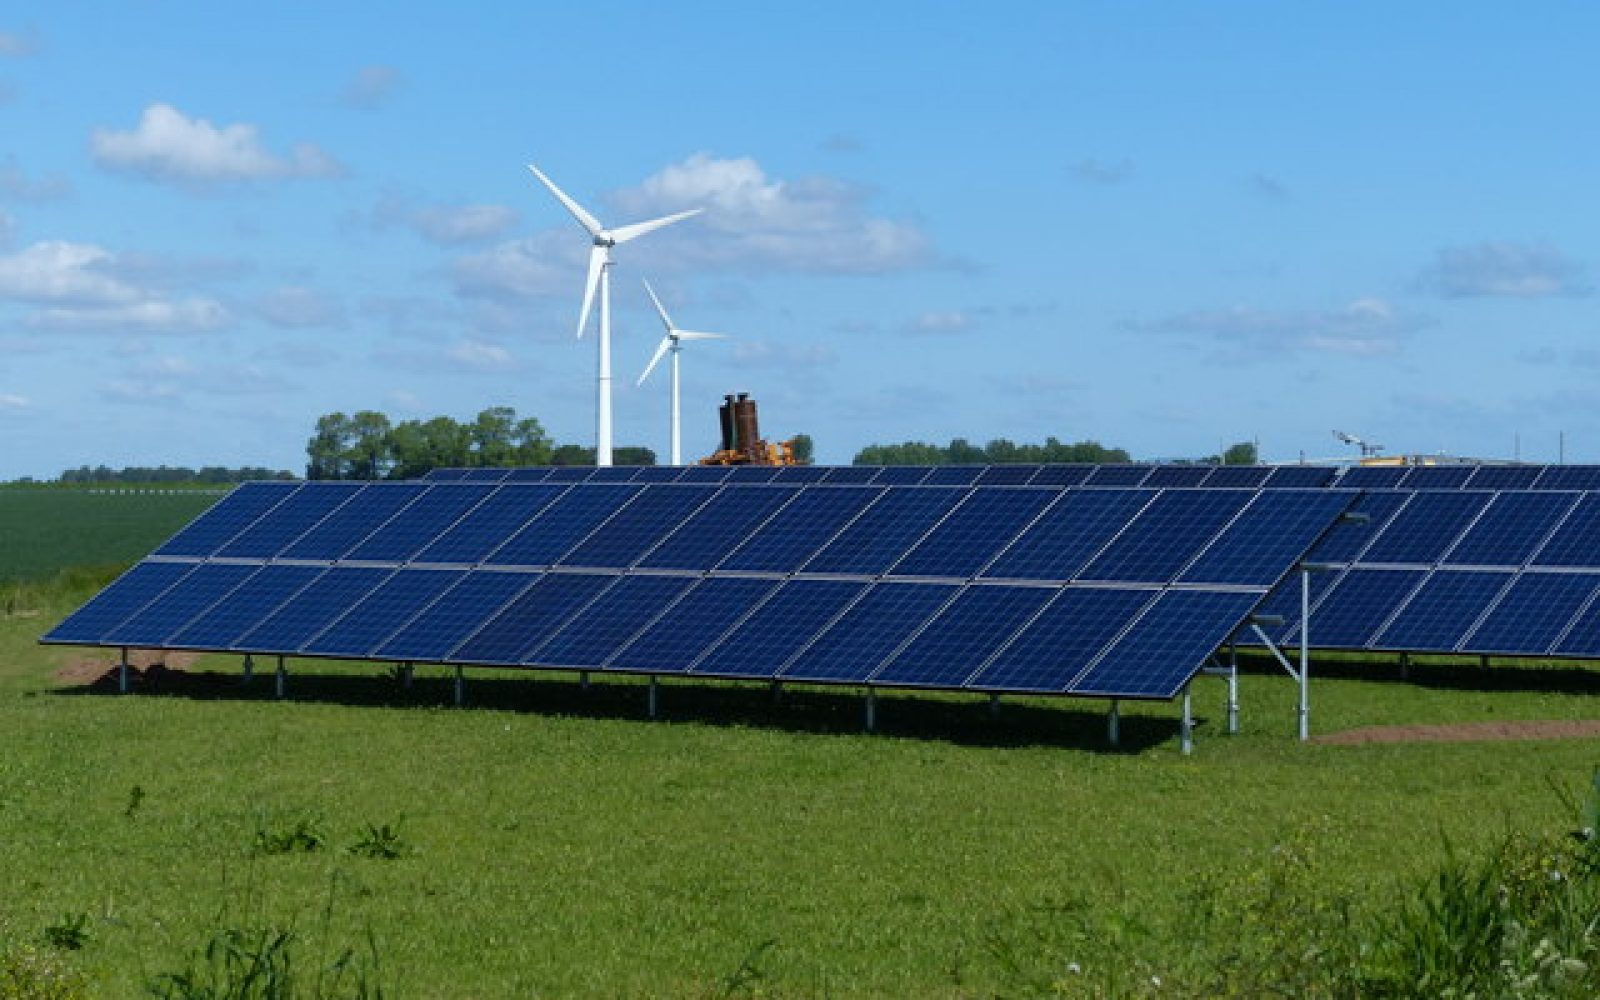 Tech startup receives funds for peer-to-peer online renewable energy